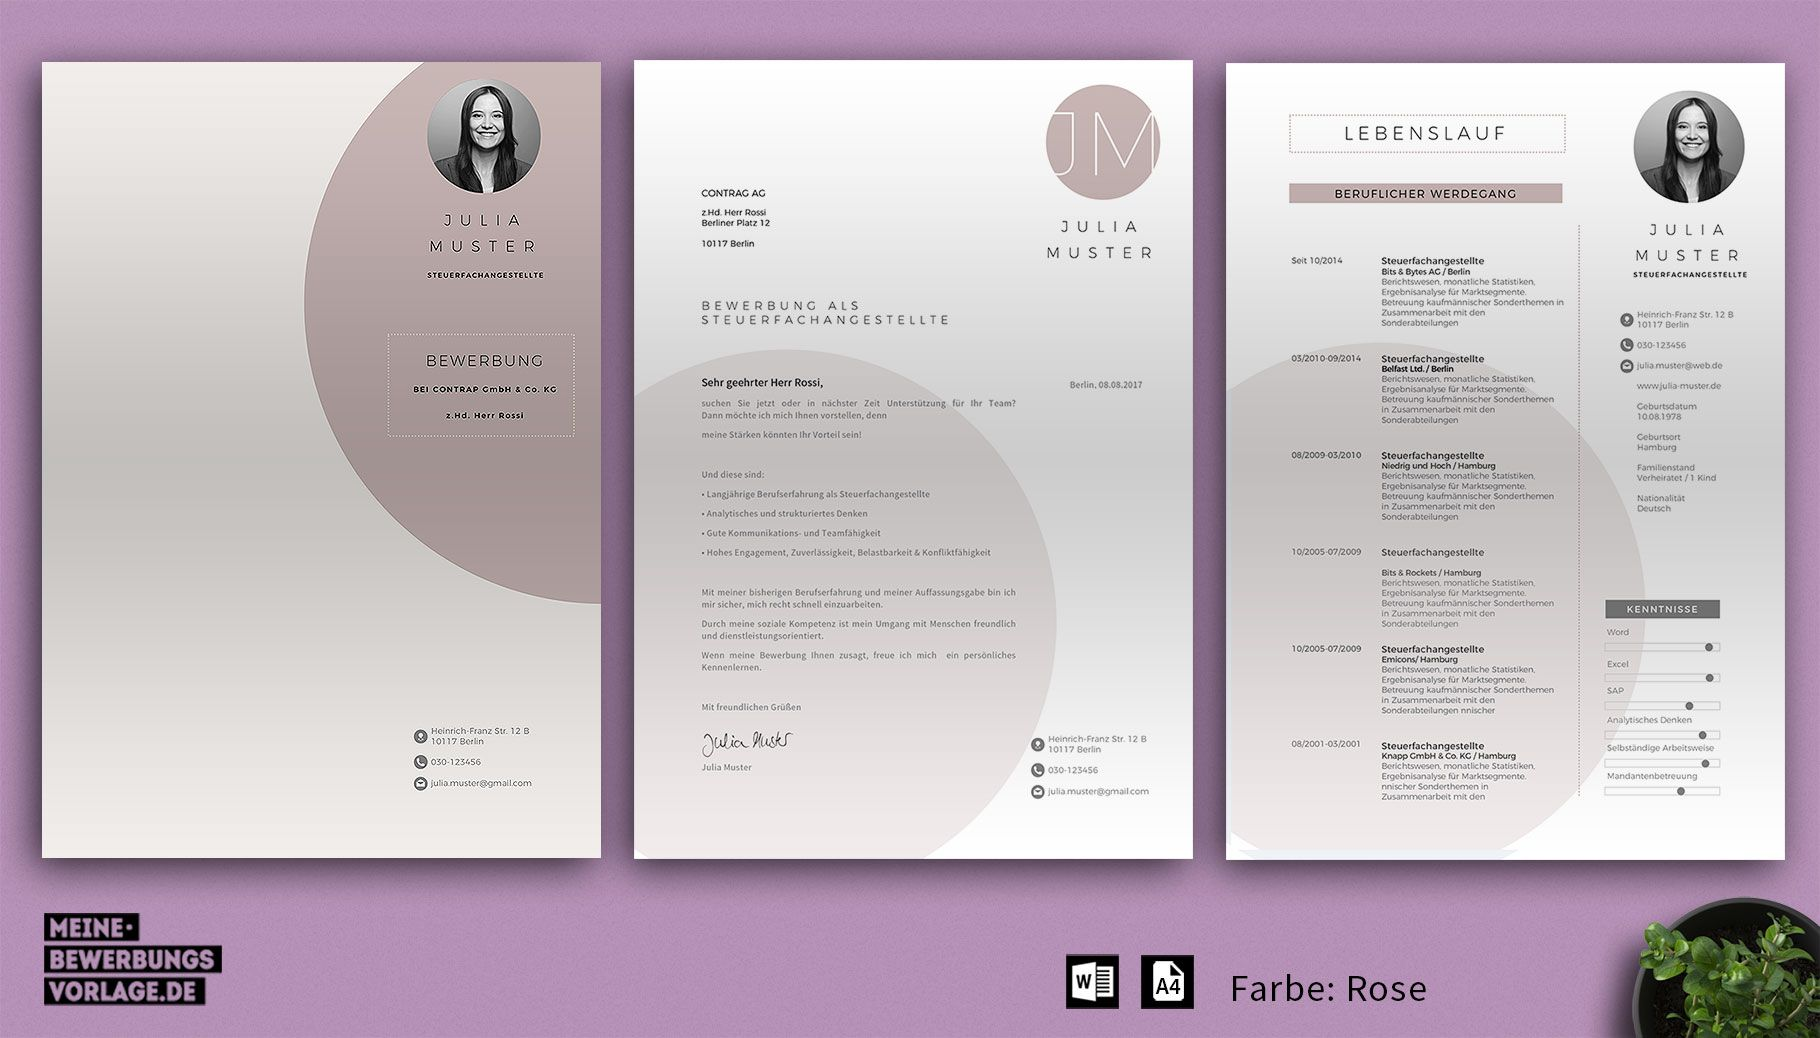 Groß Grafikdesignerzusammenfassung Bilder - Entry Level Resume ...